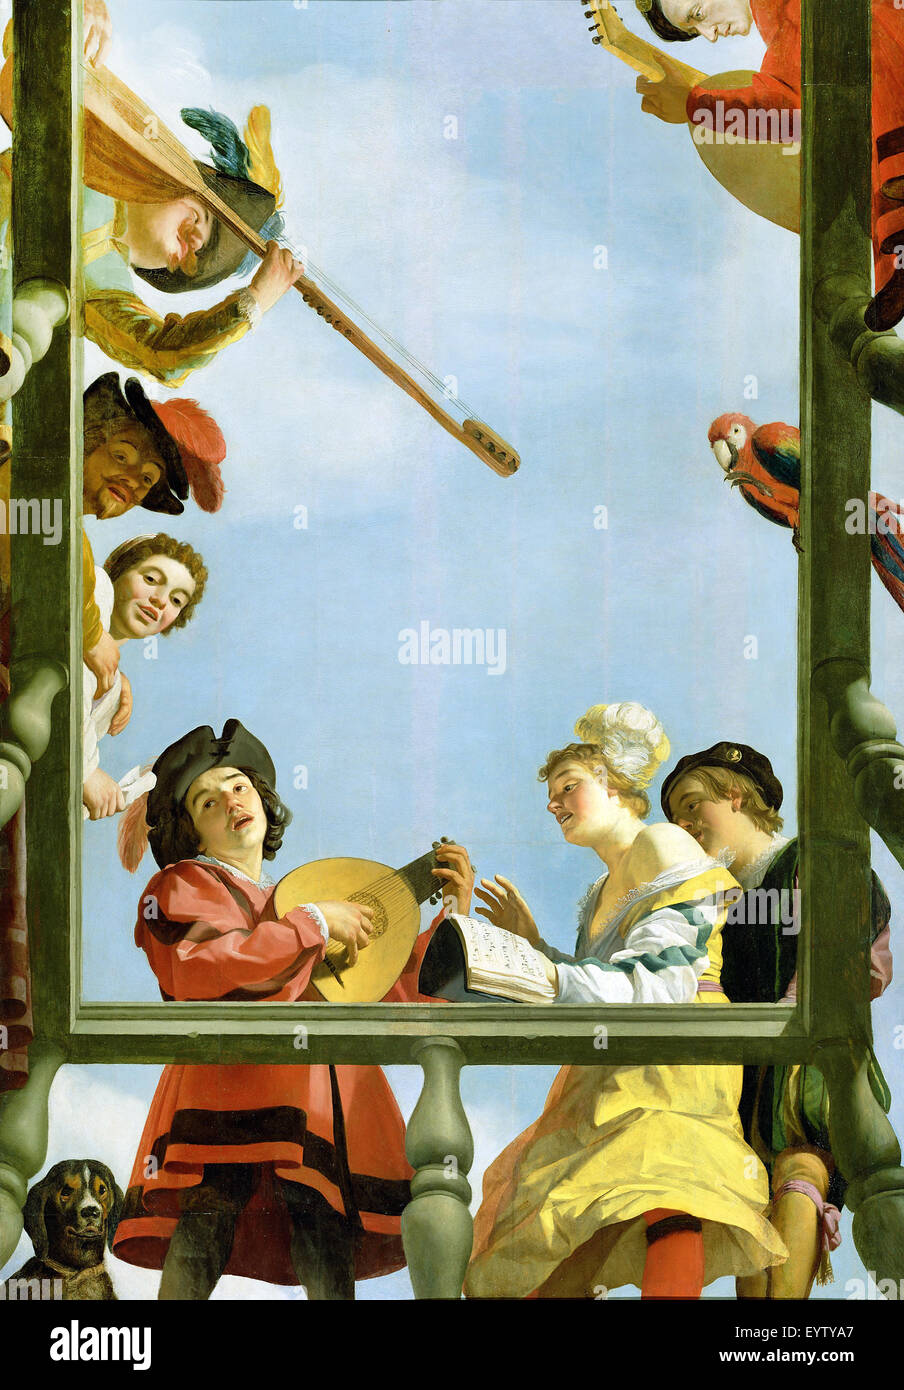 Gerrit van Honthorst, Musical Group on a Balcony 1622 Oil on panel. The J. Paul Getty Museum, Los Angeles, USA. - Stock Image